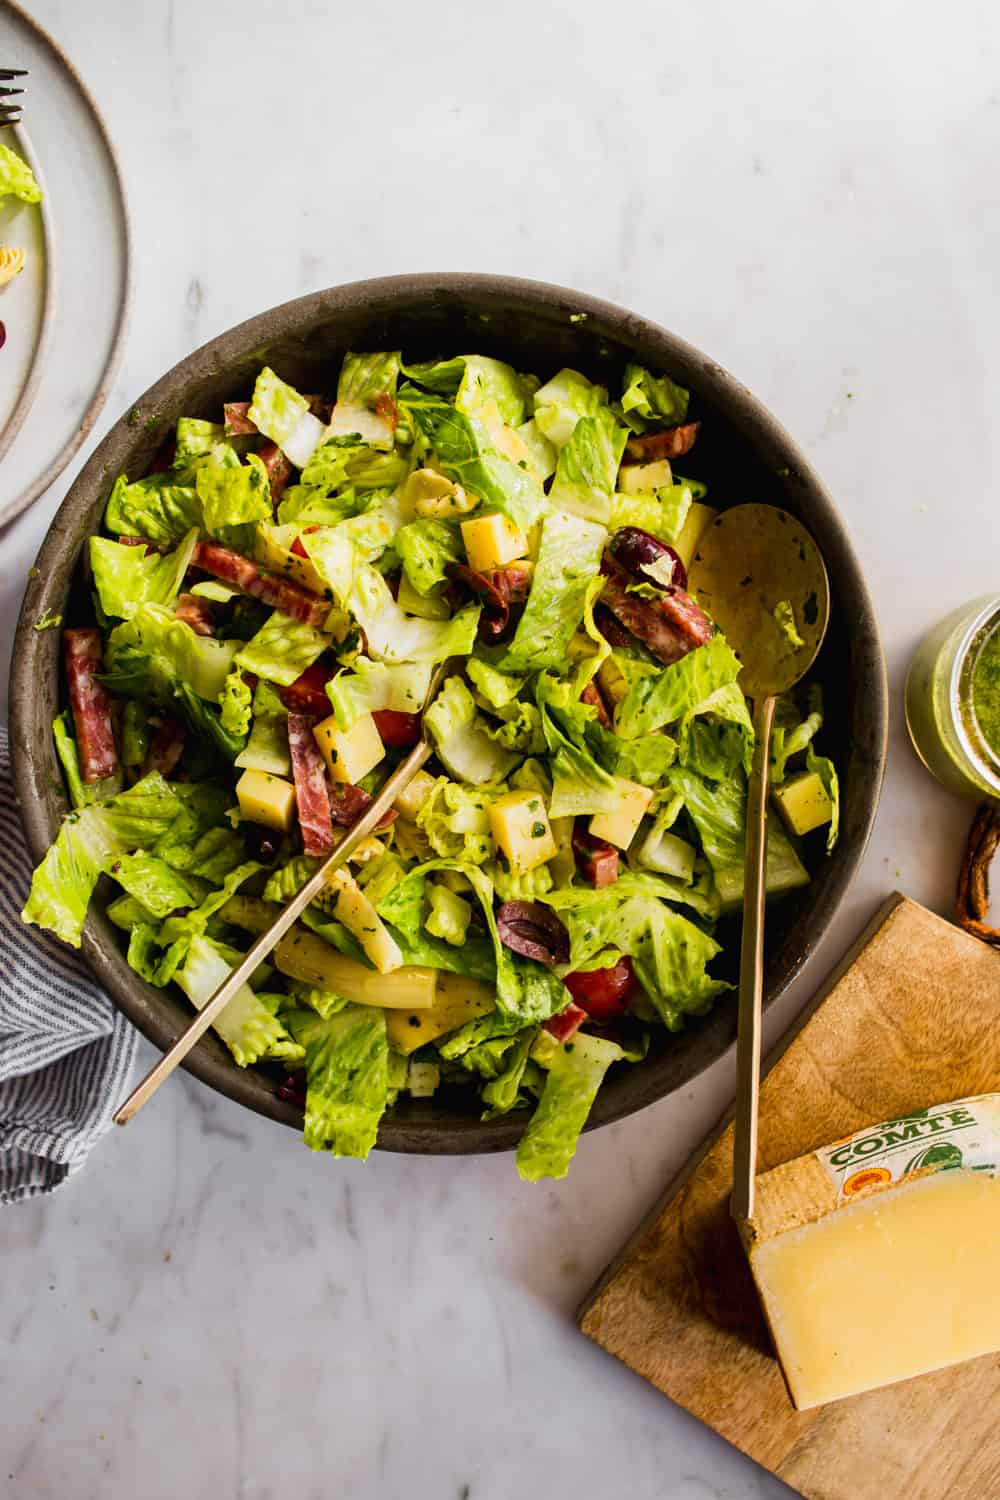 Overhead shot of a large chopped salad in a brown bowl with salad tongs